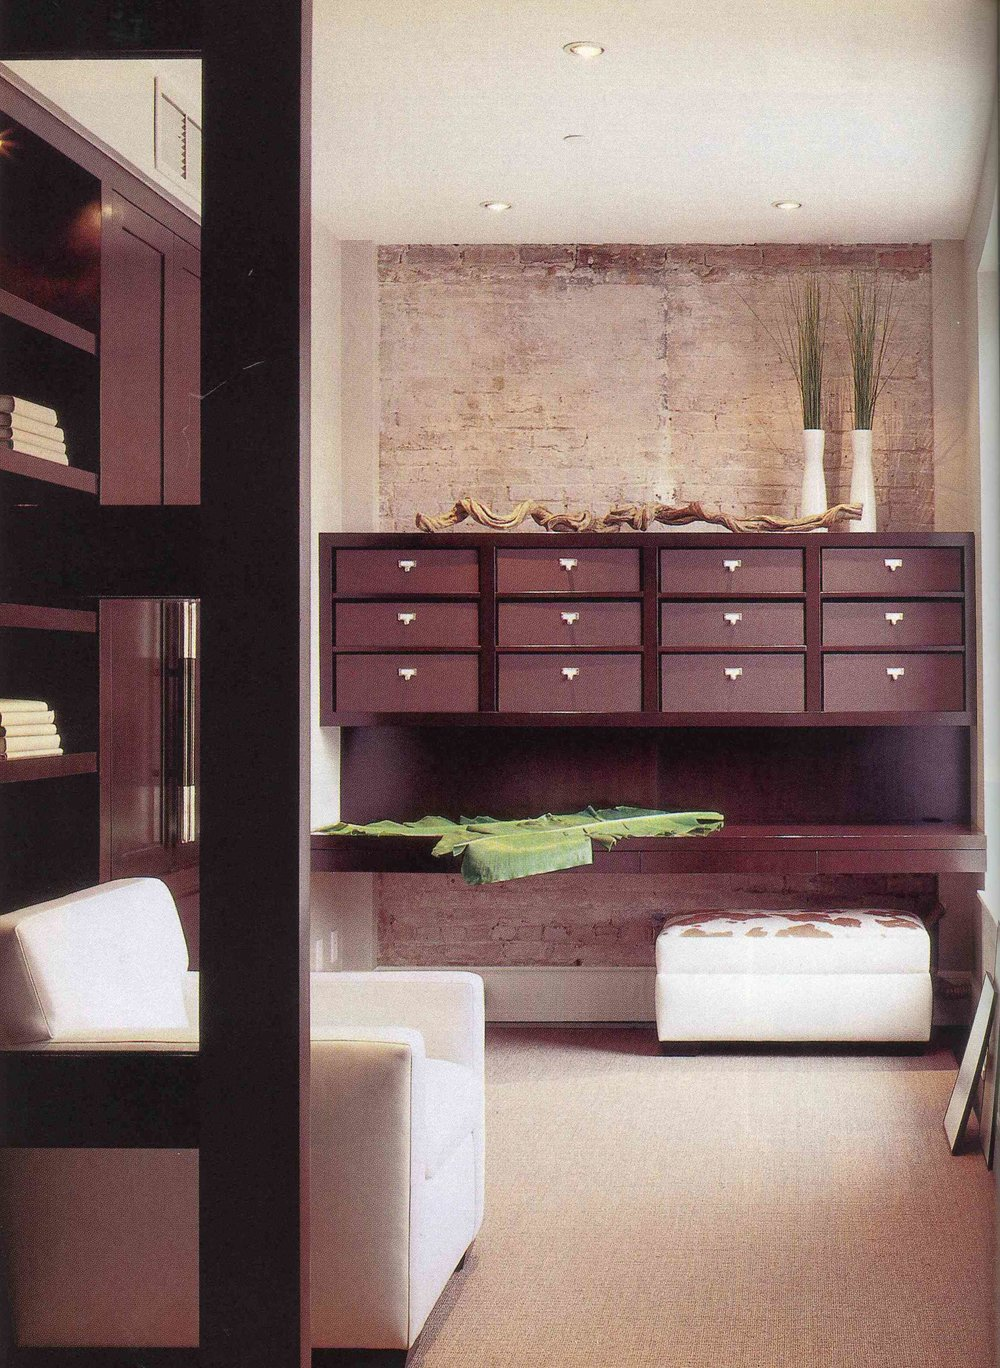 Interior Design_Nov 01_Savoy_Full Article_Page_6.jpg